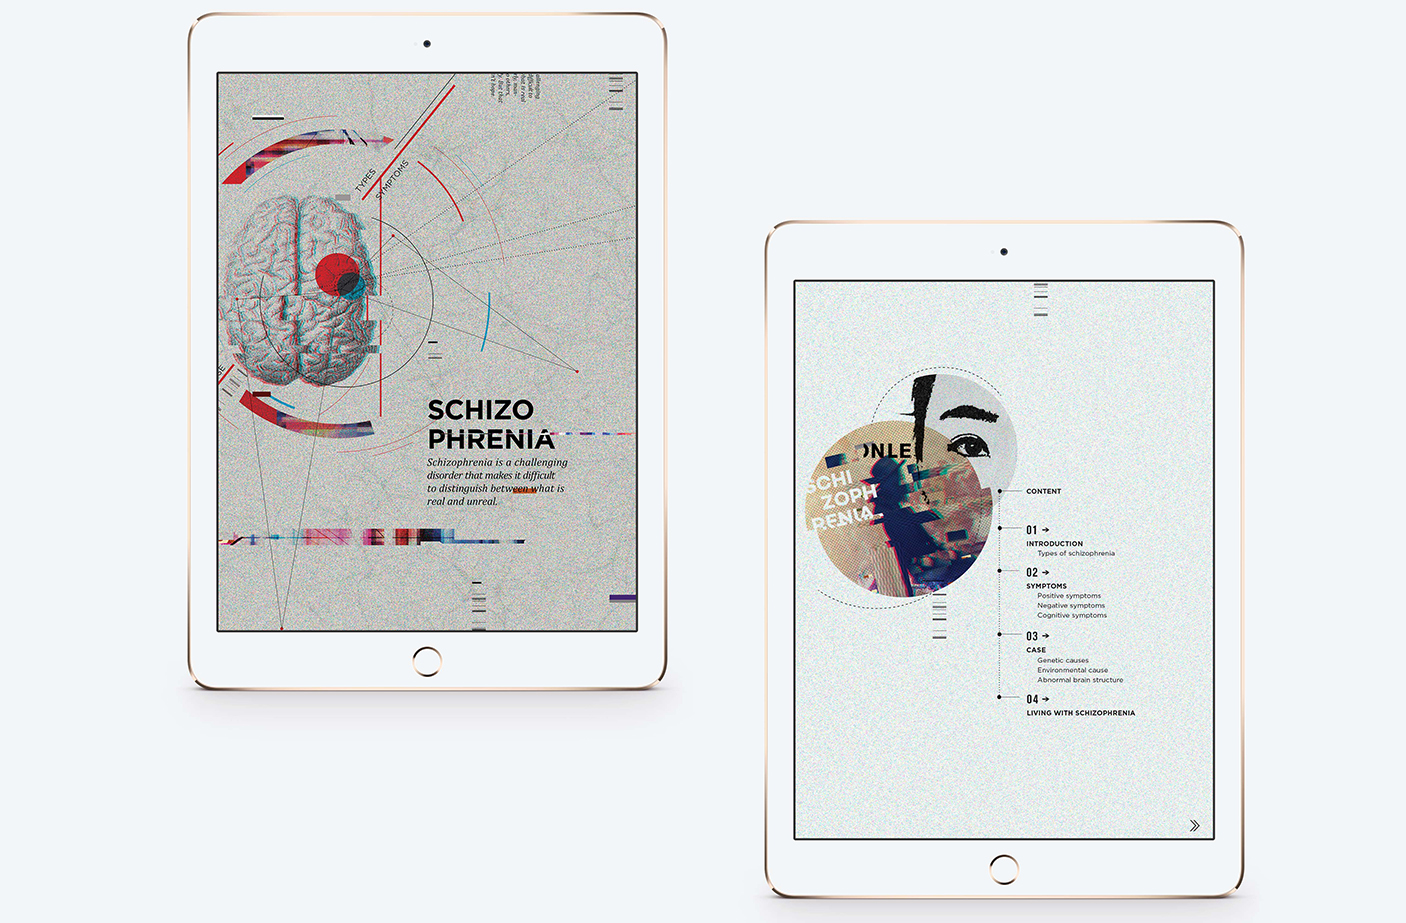 Schizophrenia Ipad Brochure